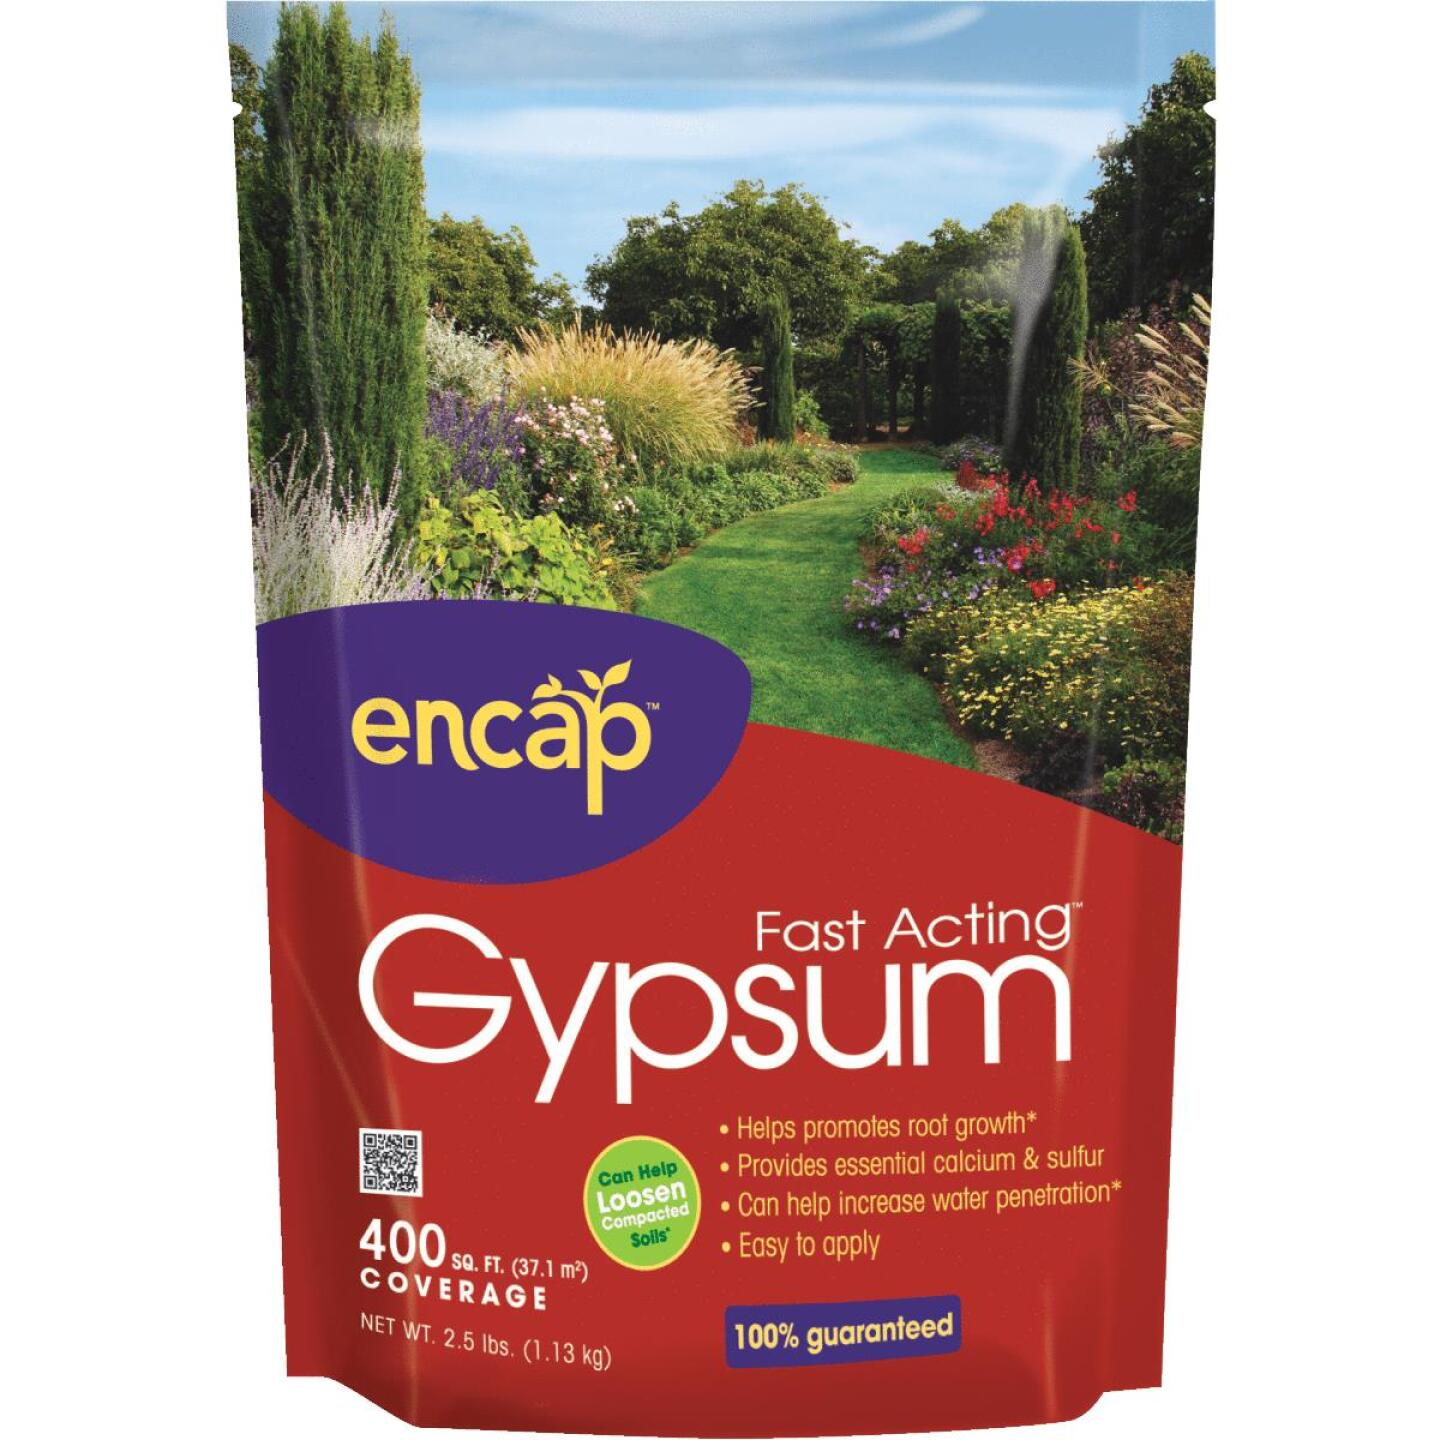 Encap 2.5 Lb. 400 Sq. Ft. Coverage Fast Acting Gypsum Image 1